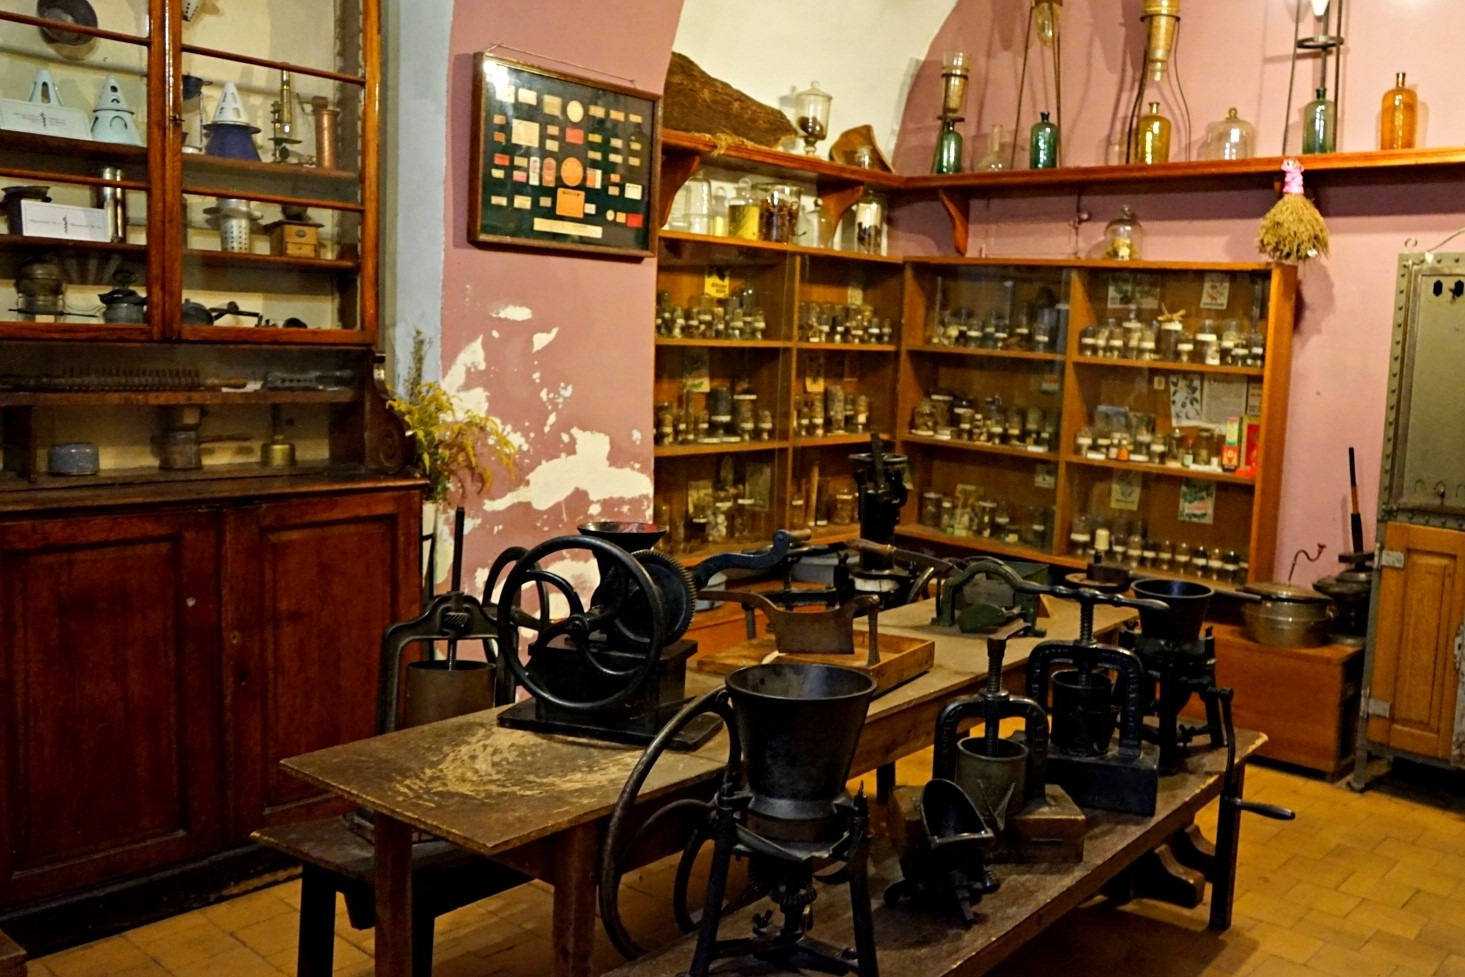 The exhibition hall in Pharmacy museum in Lviv